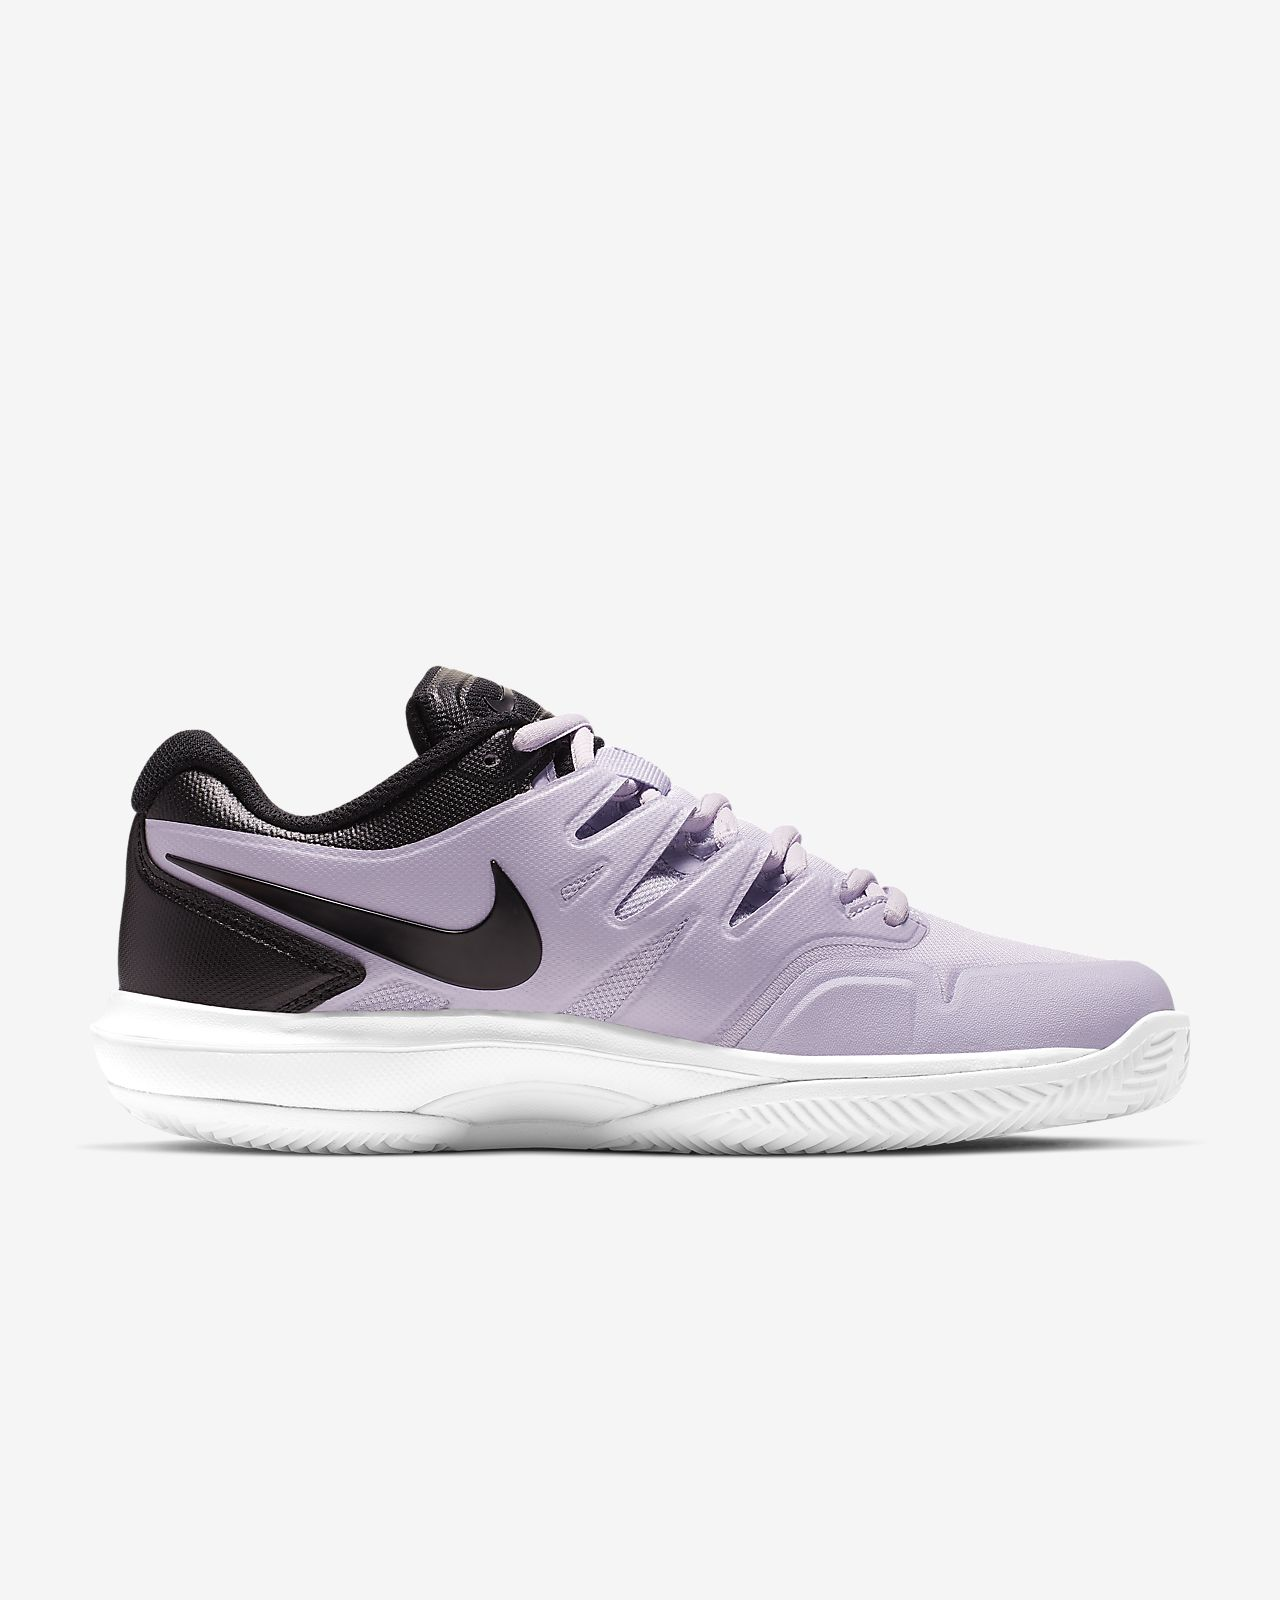 d32bc6568ac NikeCourt Air Zoom Prestige Women s Hard Court Tennis Shoe. Nike.com